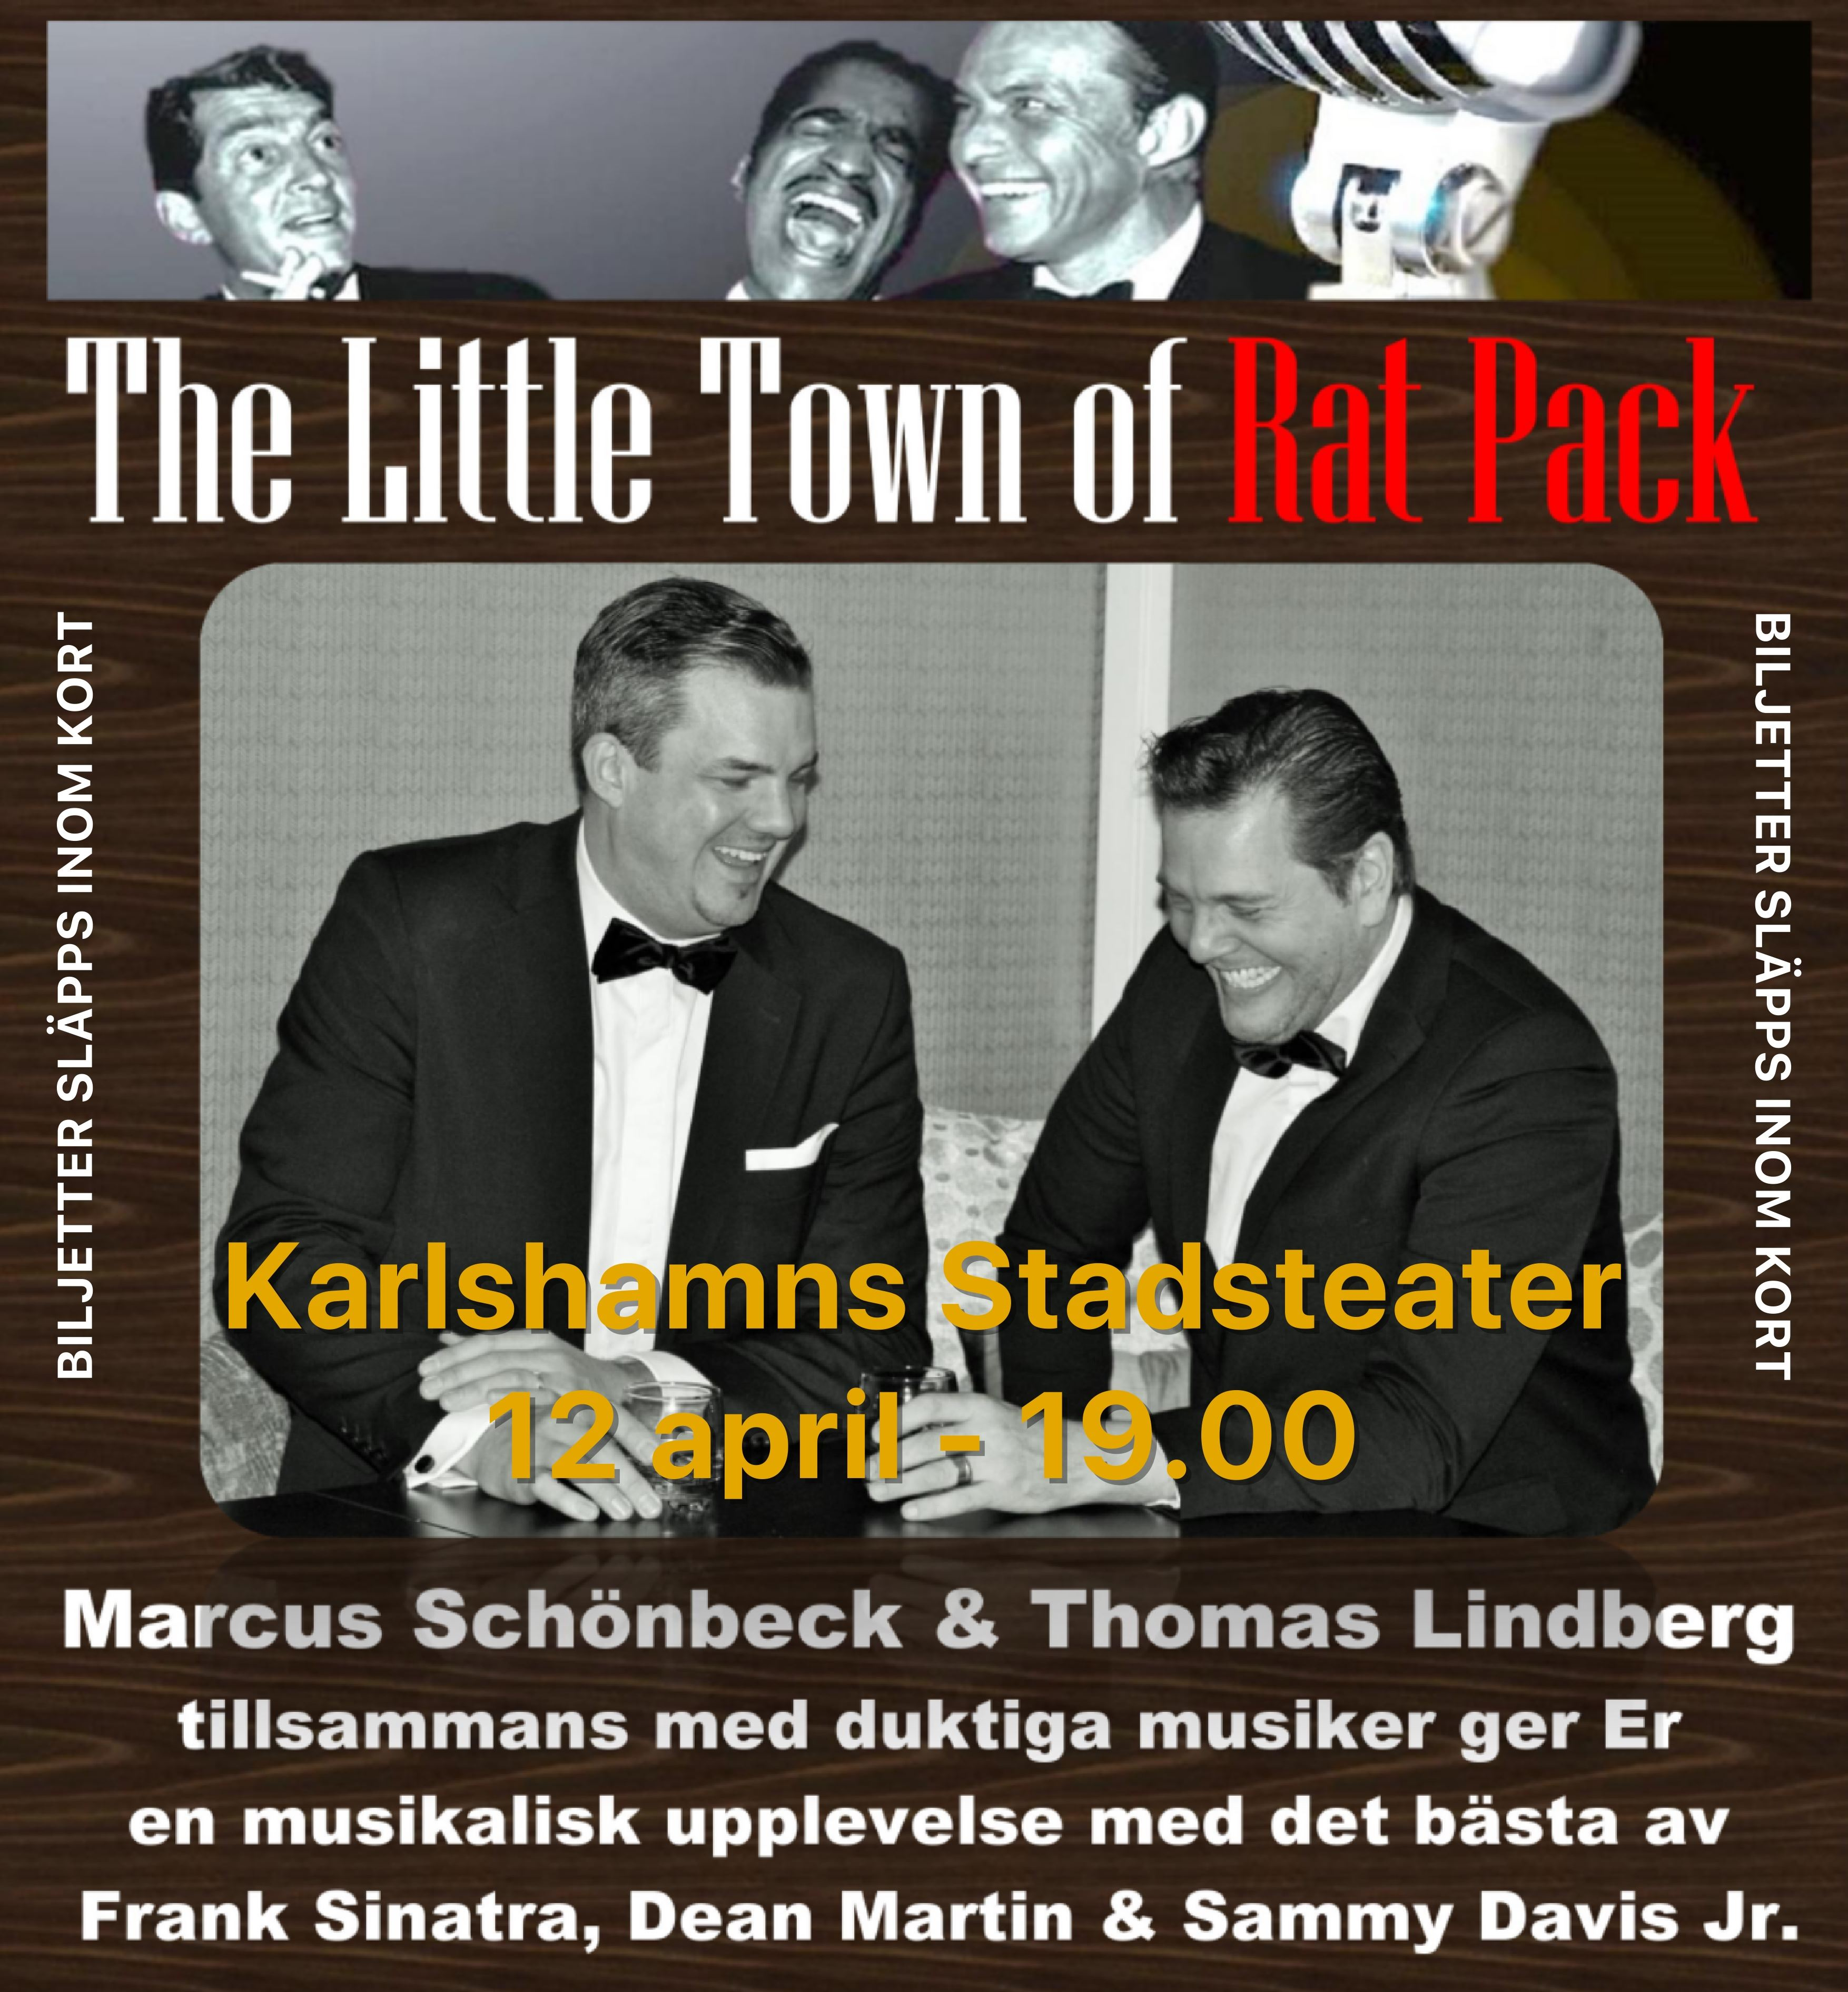 The Little Town of Rat Pack